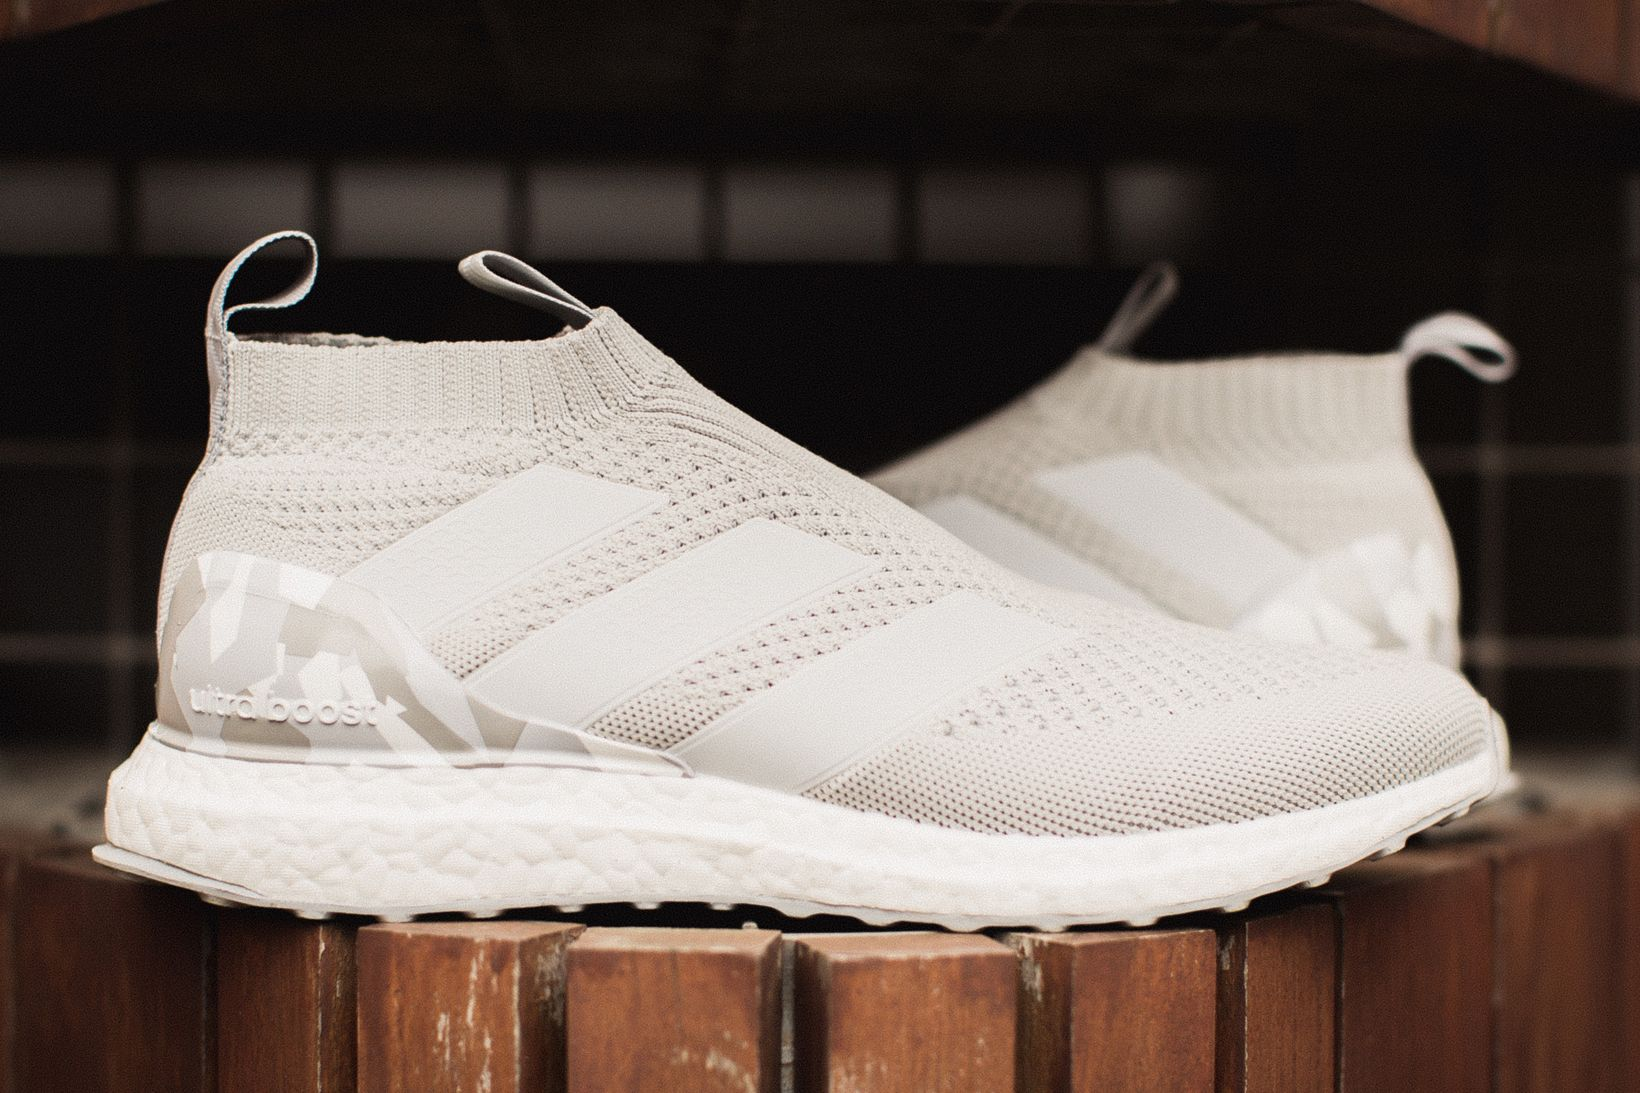 c5e8dd4acb8ff Hello everyone we are doing a live stream today at 1.30pm featuring - adidas  ACE 16 Pure Control Ultra Boost Triple White - Competition for Japan …